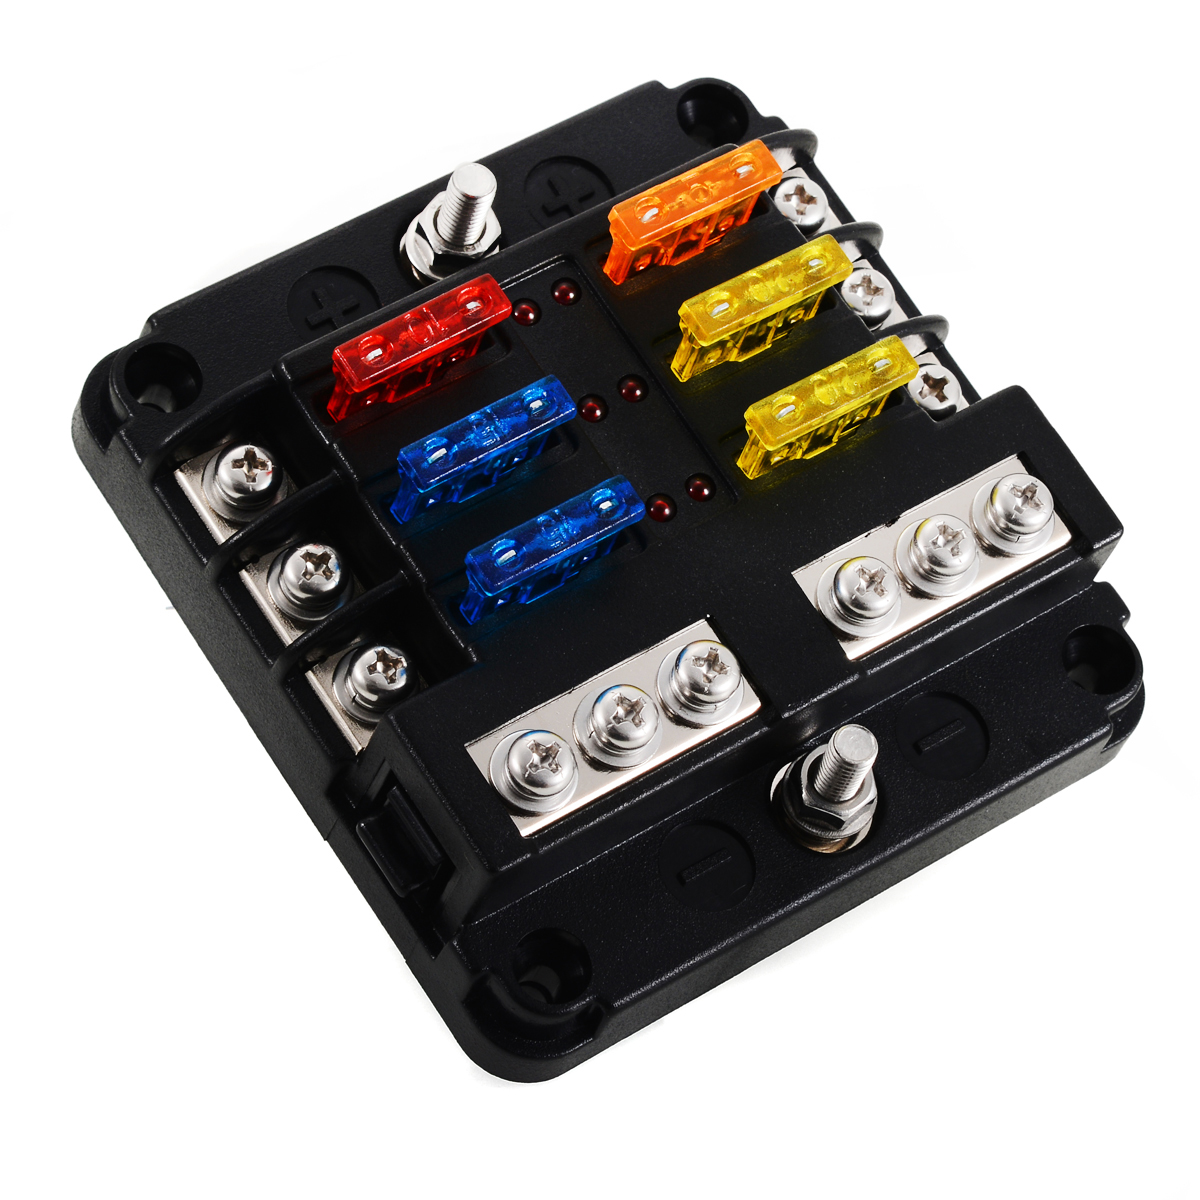 medium resolution of 6 way blade fuse holder box block case 12v 24v car truck marine bus rv van mayitr for car boat marine caravan truck